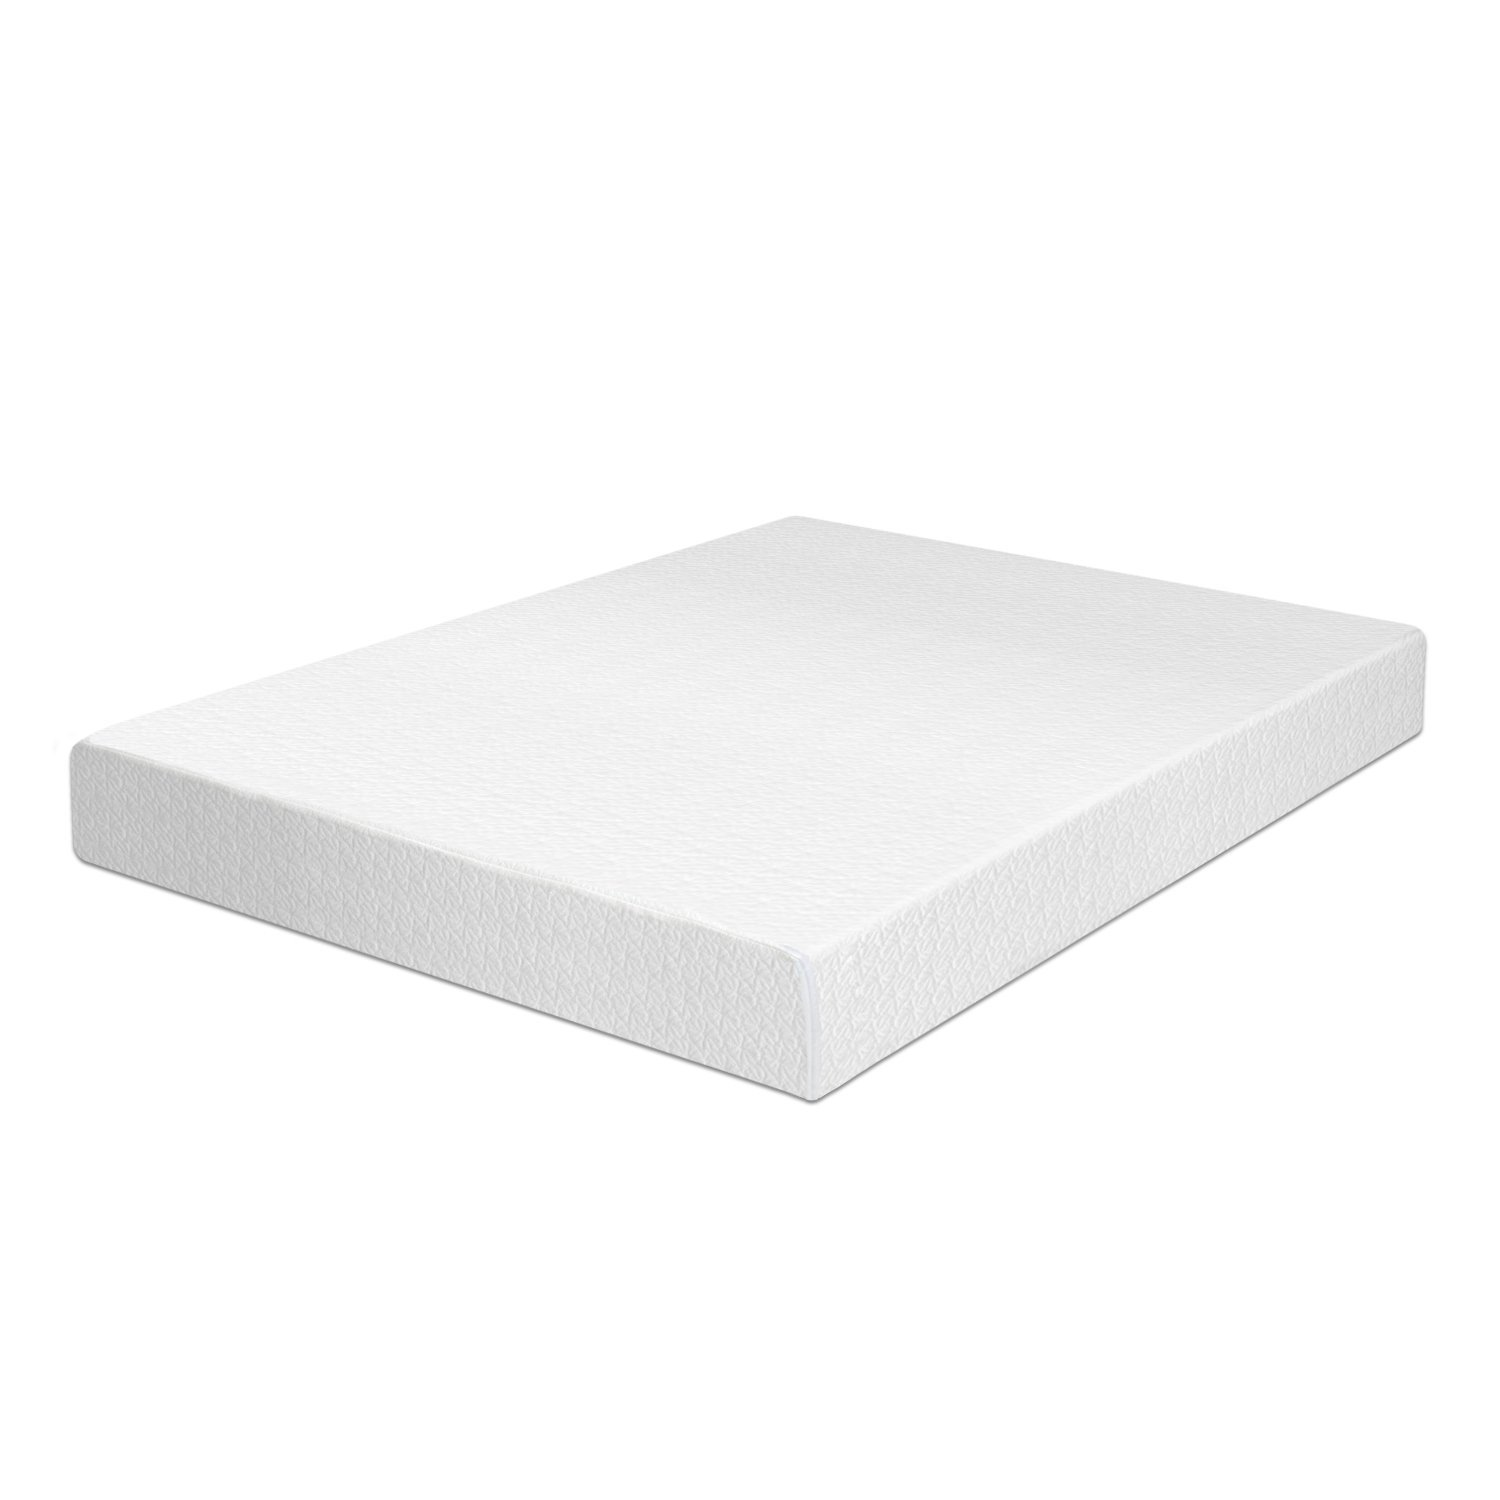 Best Mattress 8 Inch Memory Foam Mattress Queen Review Top 2 Reviews Product Reviews By Expert